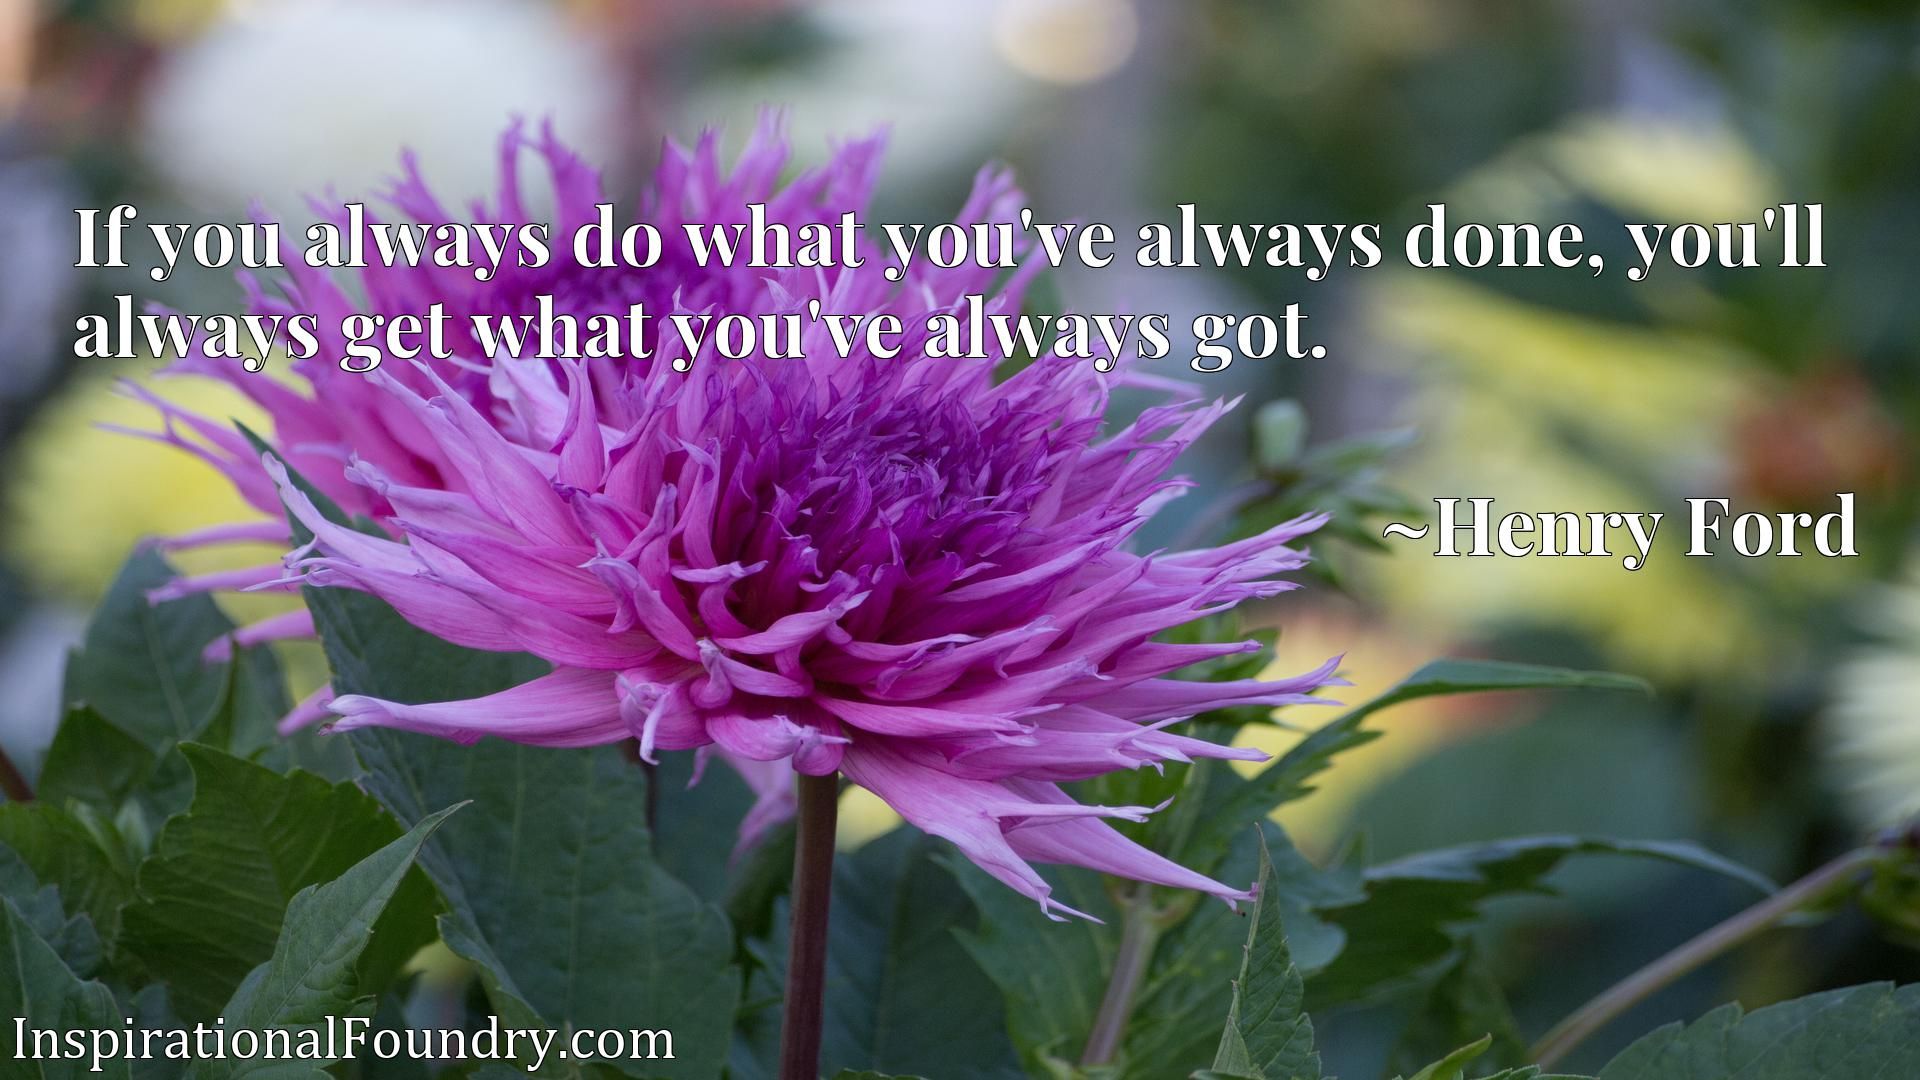 If you always do what you've always done, you'll always get what you've always got.